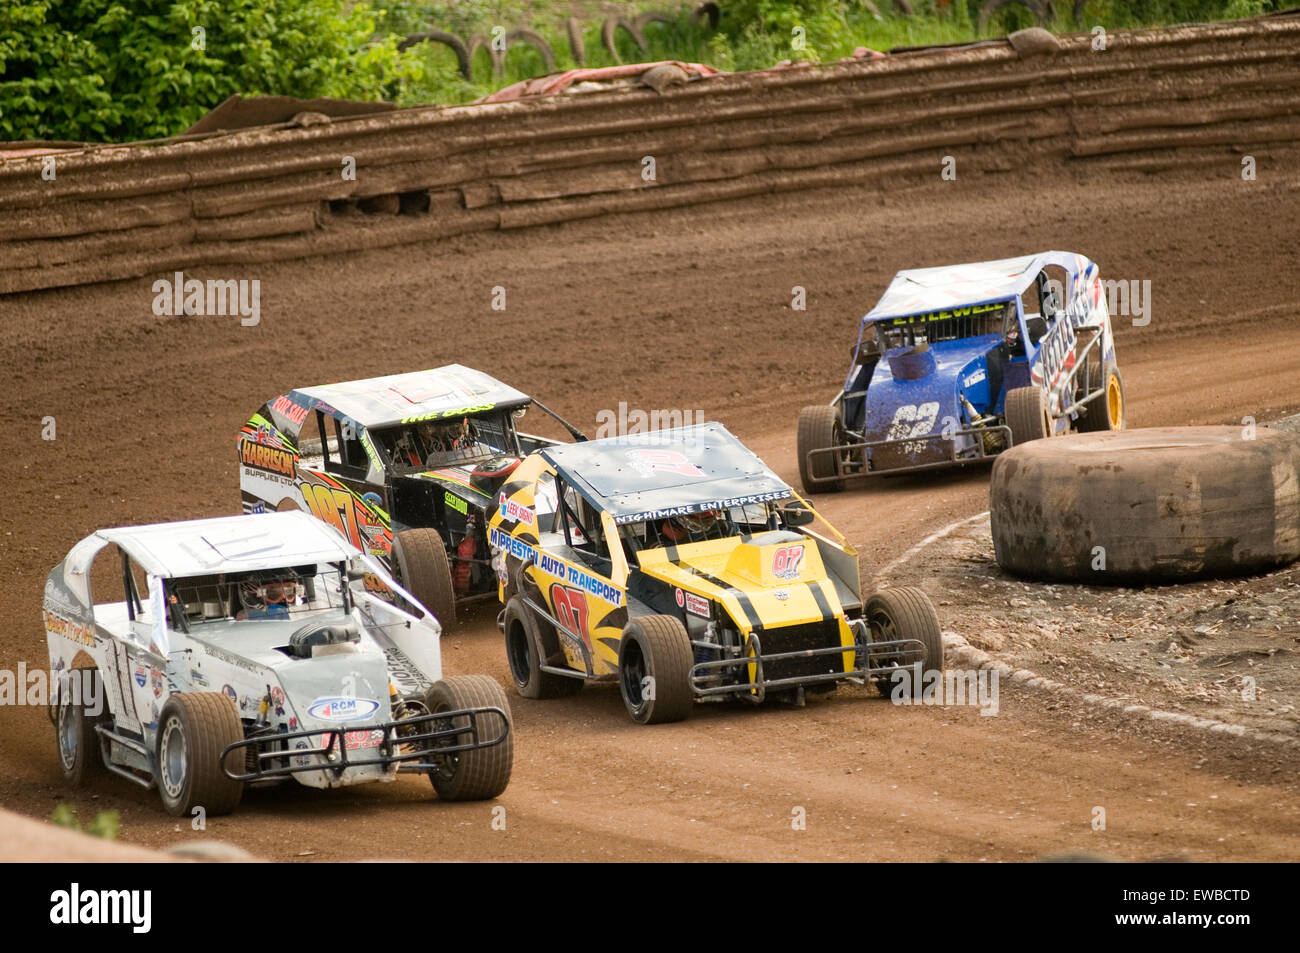 modified stock car cars race racing races dirt oval track